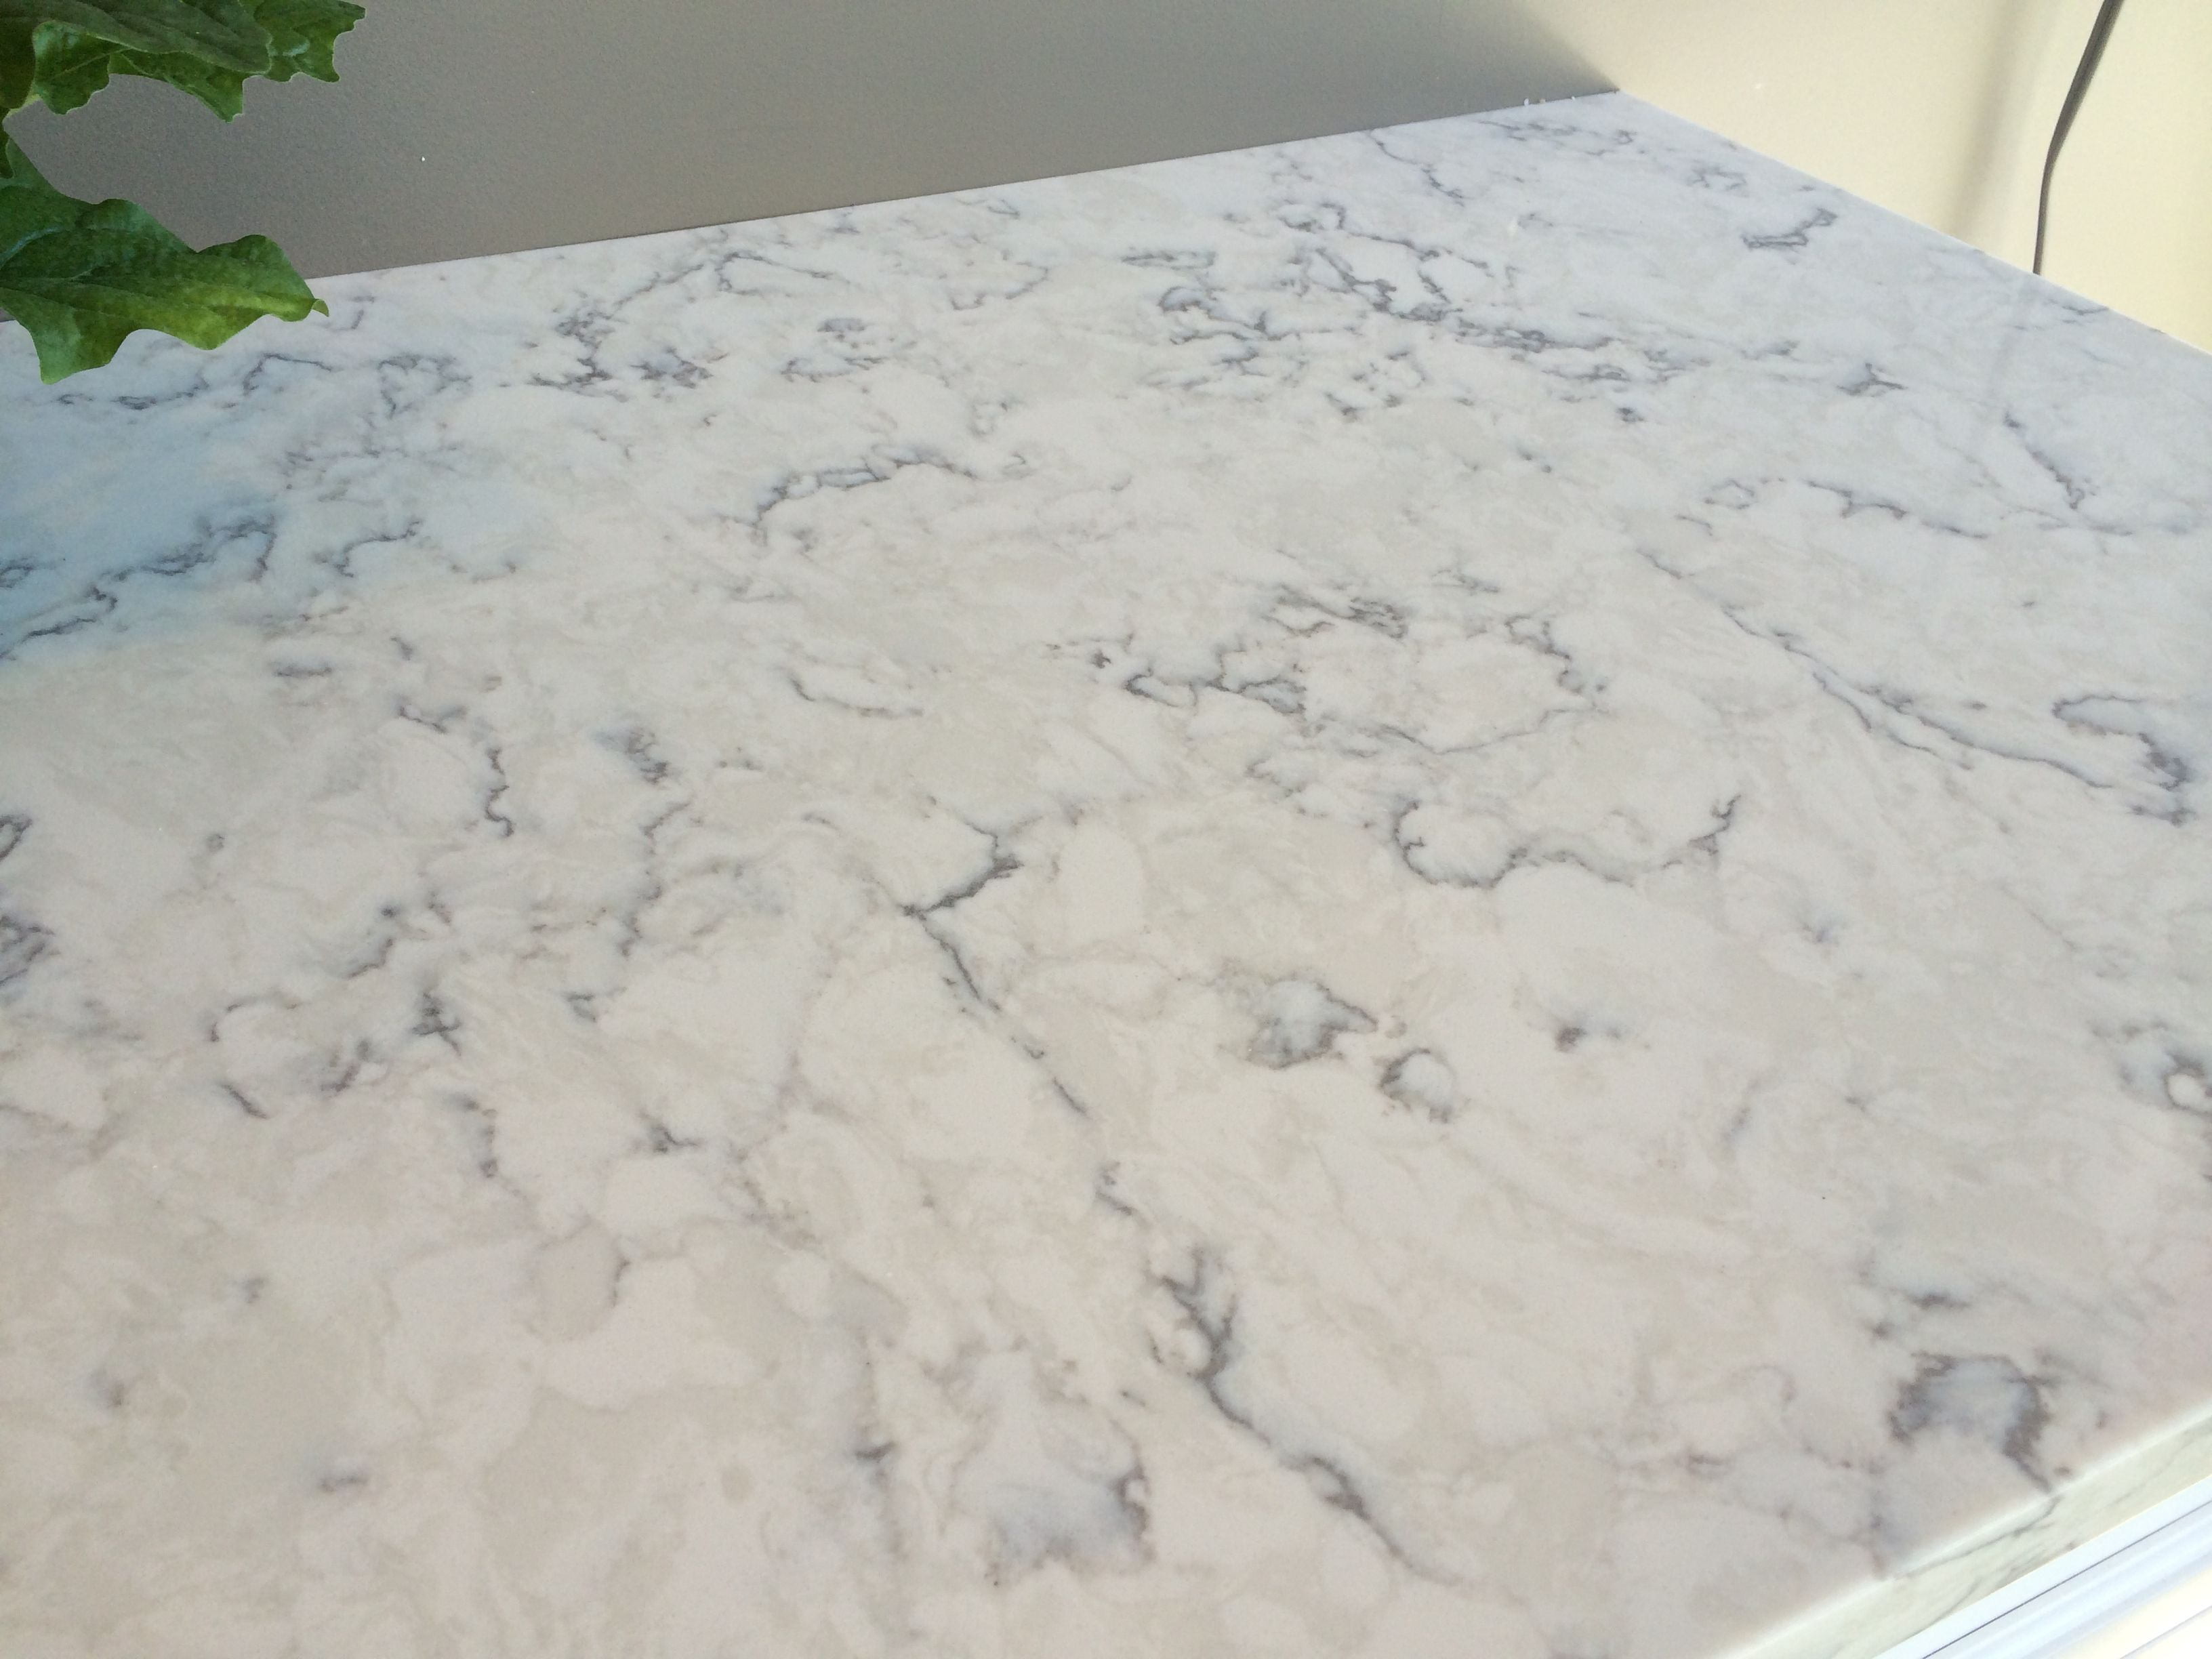 Viatera Quartz Rococo This Is The Counter Top We Picked Out Today